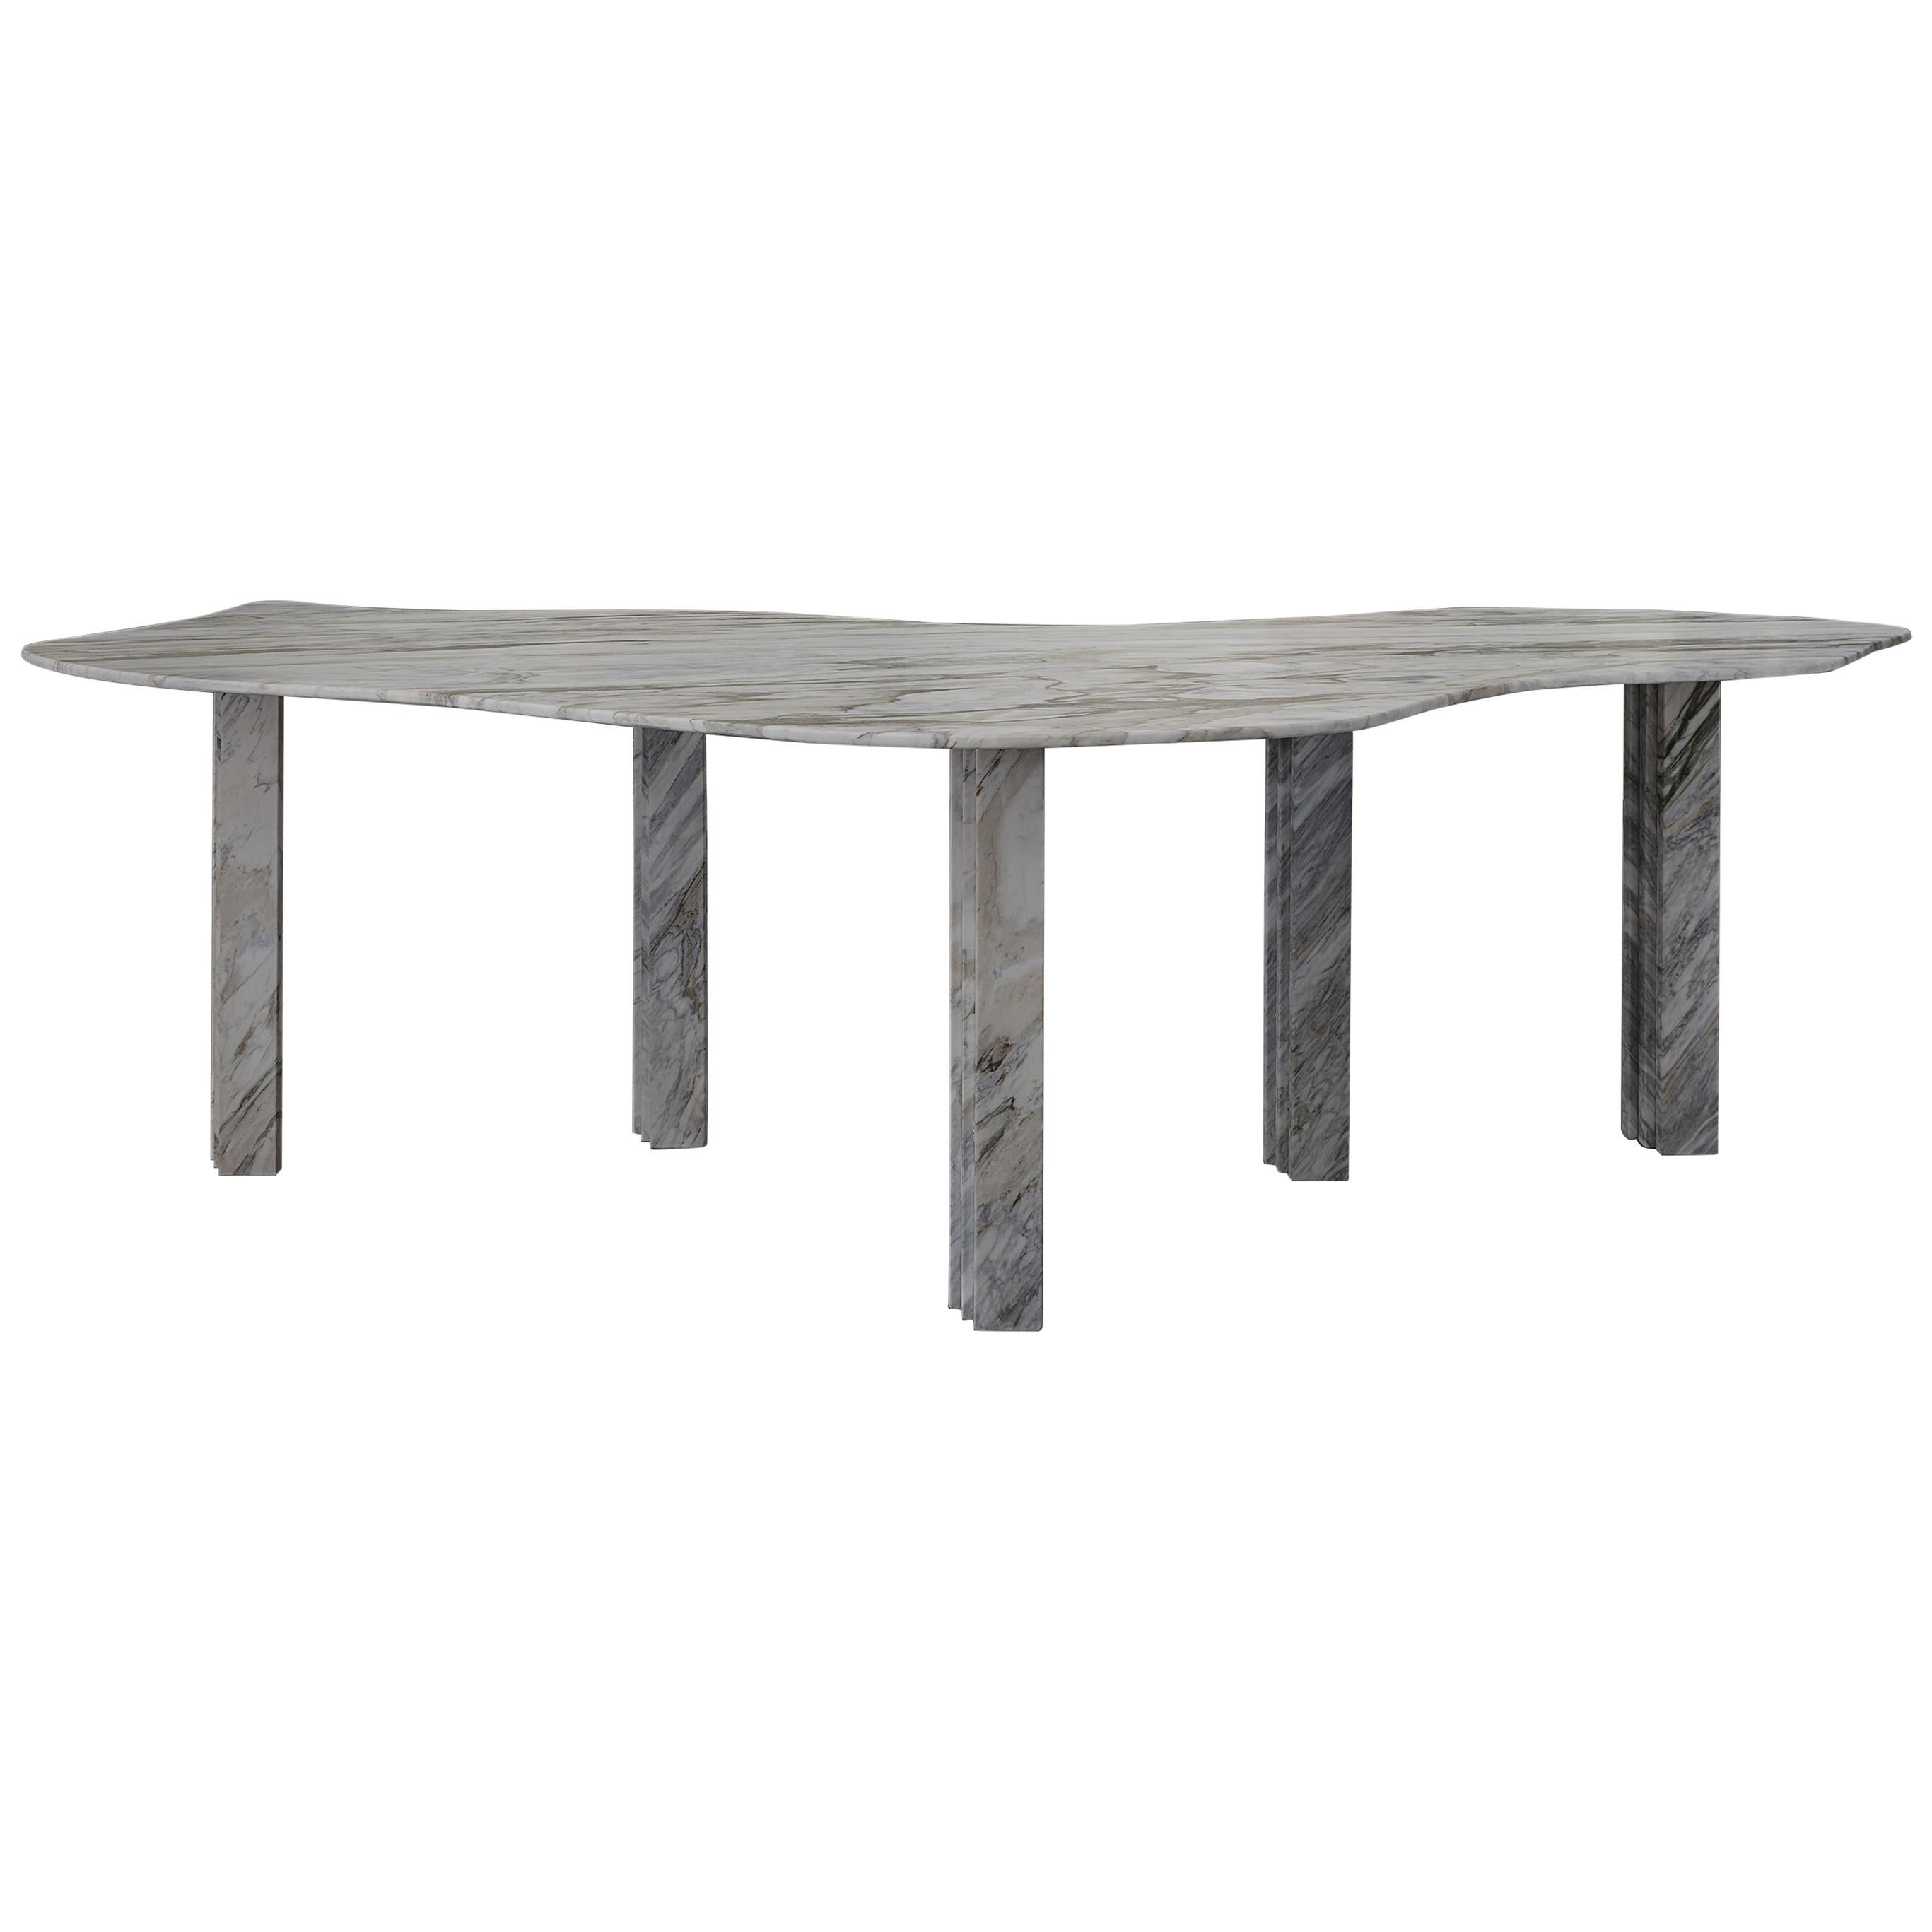 Bicolor Sculptural Marble Coffee Table Signed by Lorenzo Bini